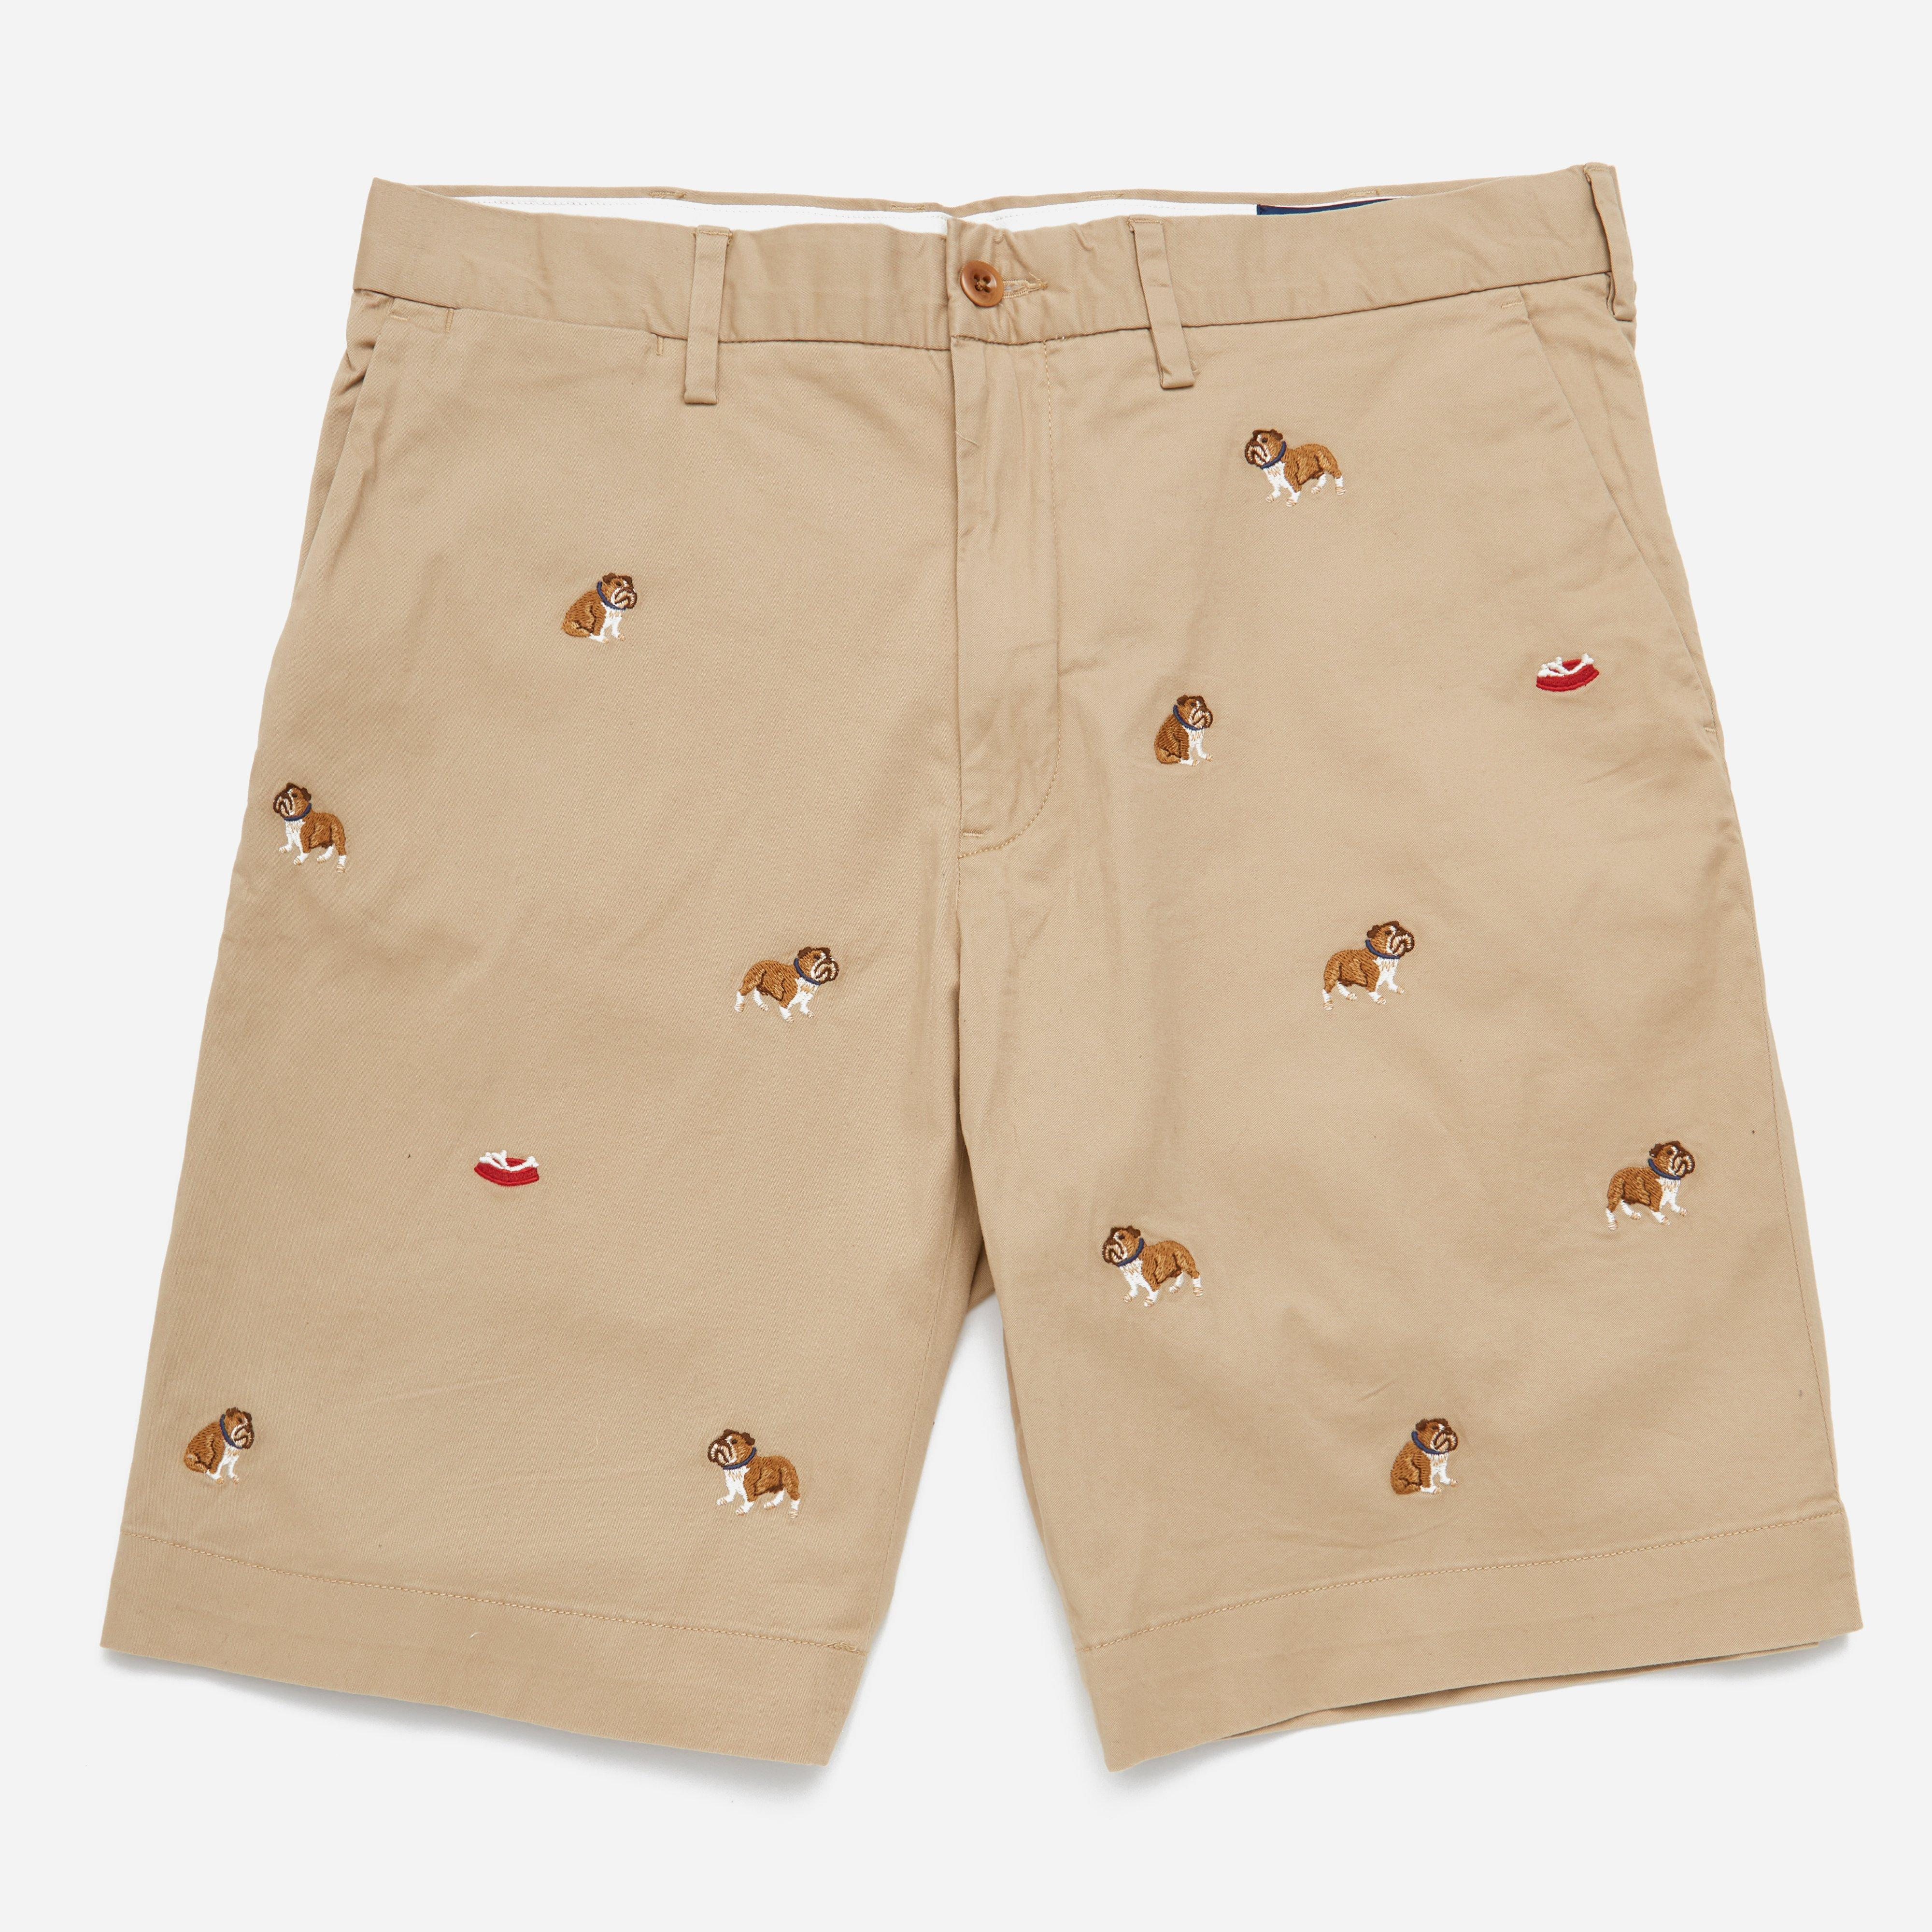 Polo Ralph Lauren Newport Flat Short Embroided